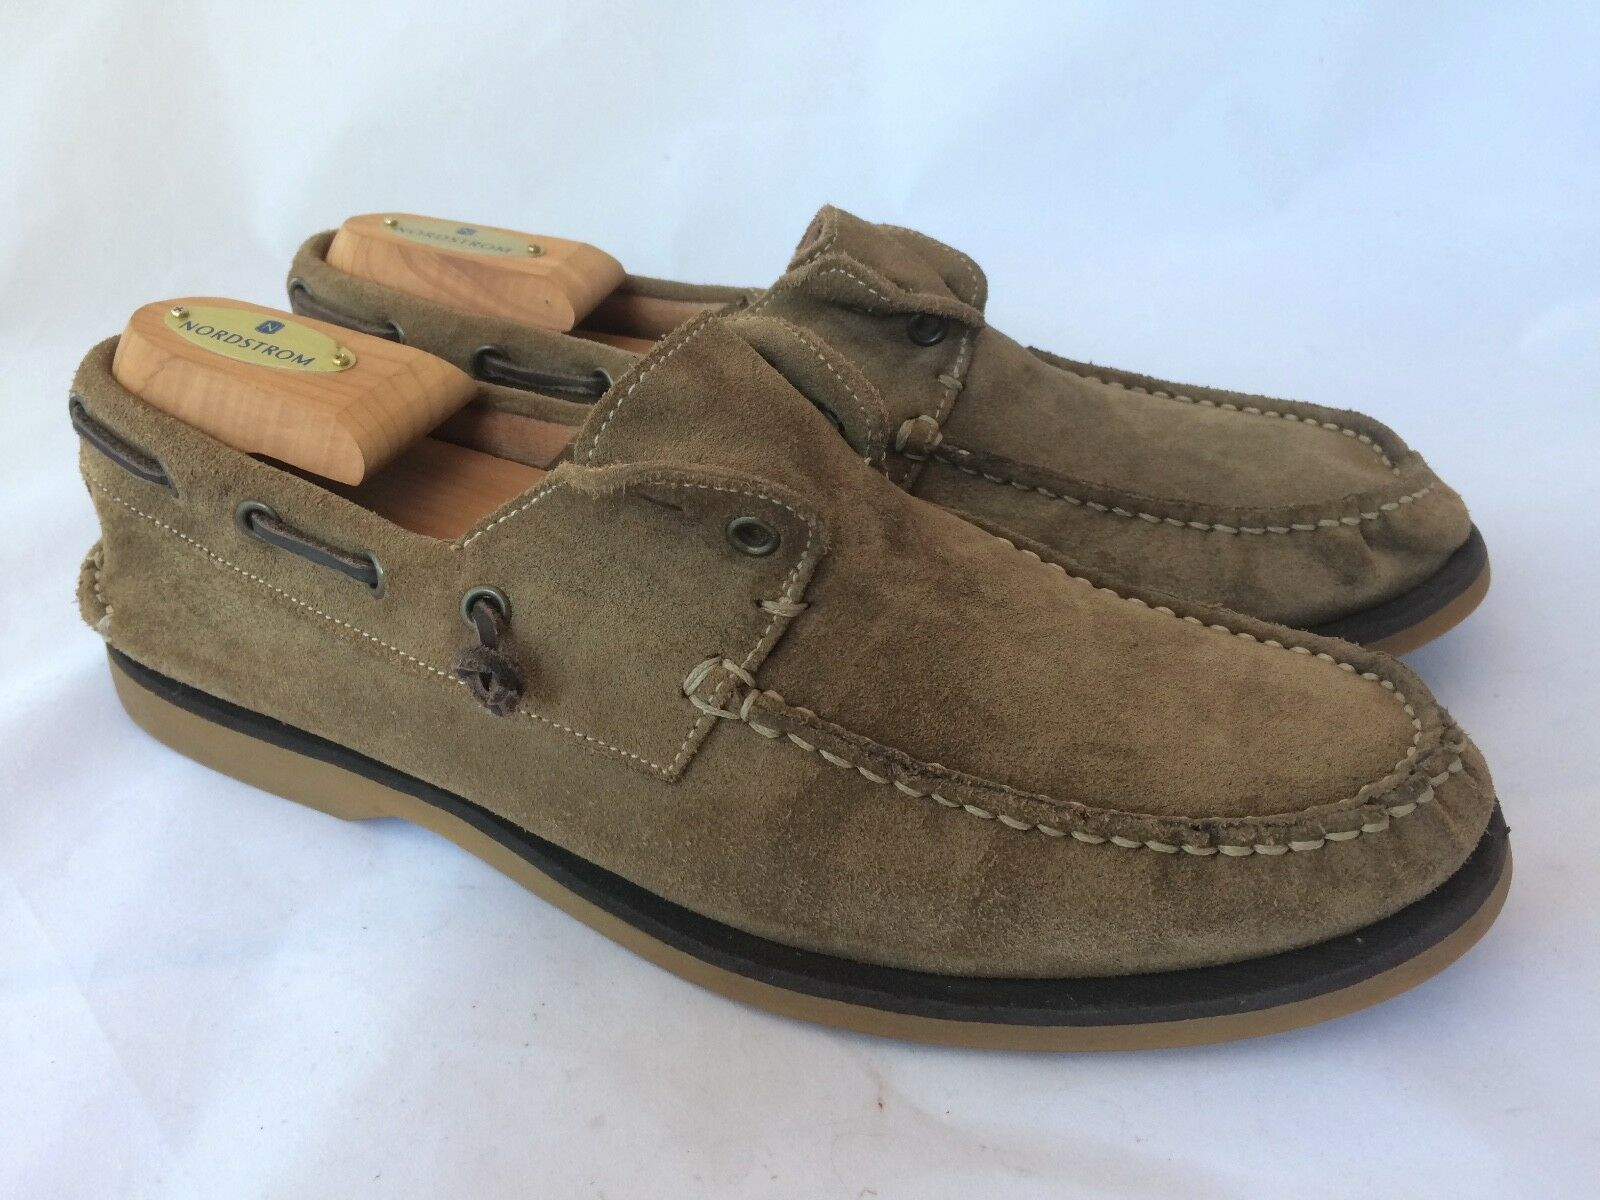 Men's John Varvatos Beige Suede Leather Loafers Made in Italy size 9